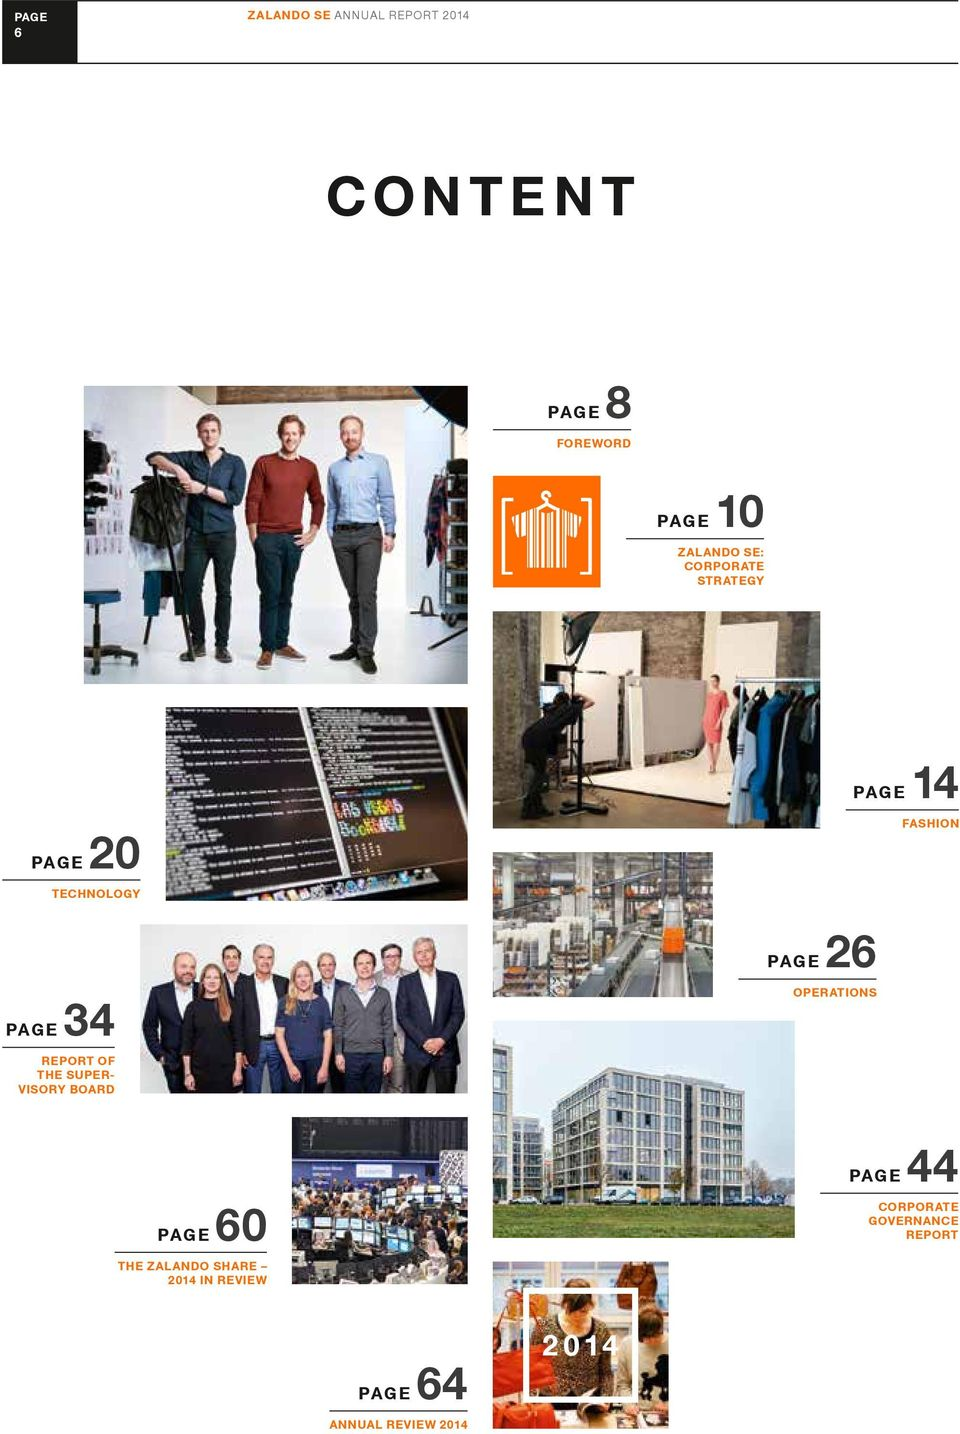 OPERATIONS REPORT OF THE SUPER- VISORY BOARD PAGE 60 THE ZALANDO SHARE 2014